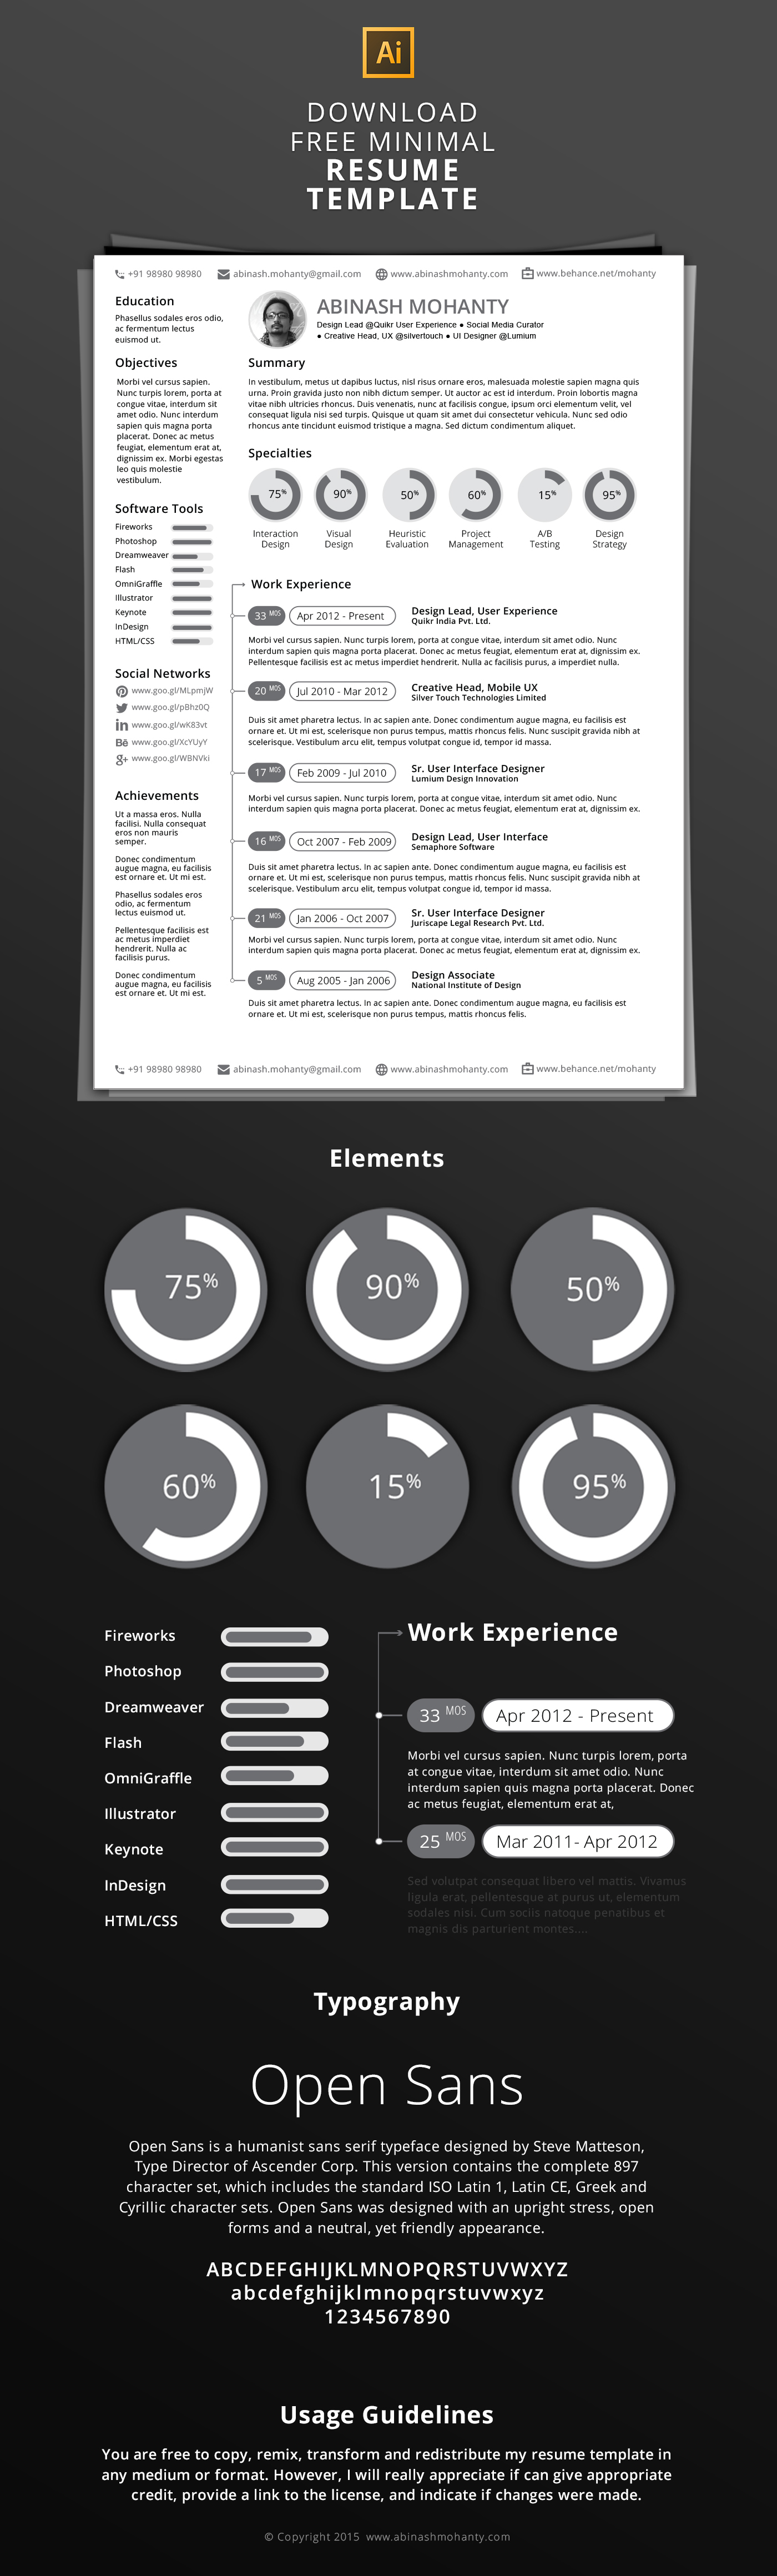 Free Minimal ResumeCv Template On Behance